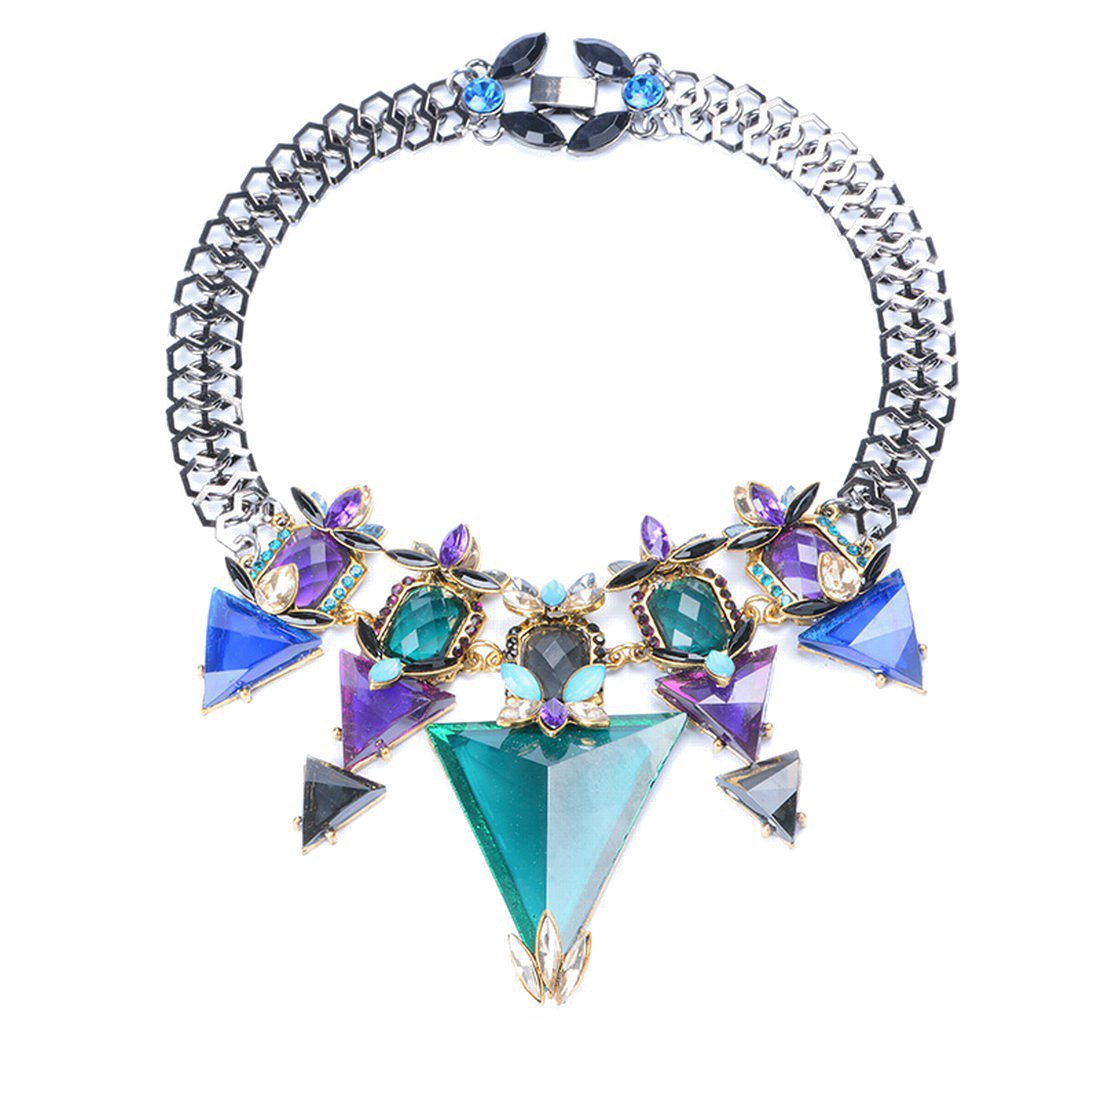 Olsen Twins Vintage Black Chain Crystal Glass Triangle Necklaces & Pendants Statement Jewelry (Colorful)